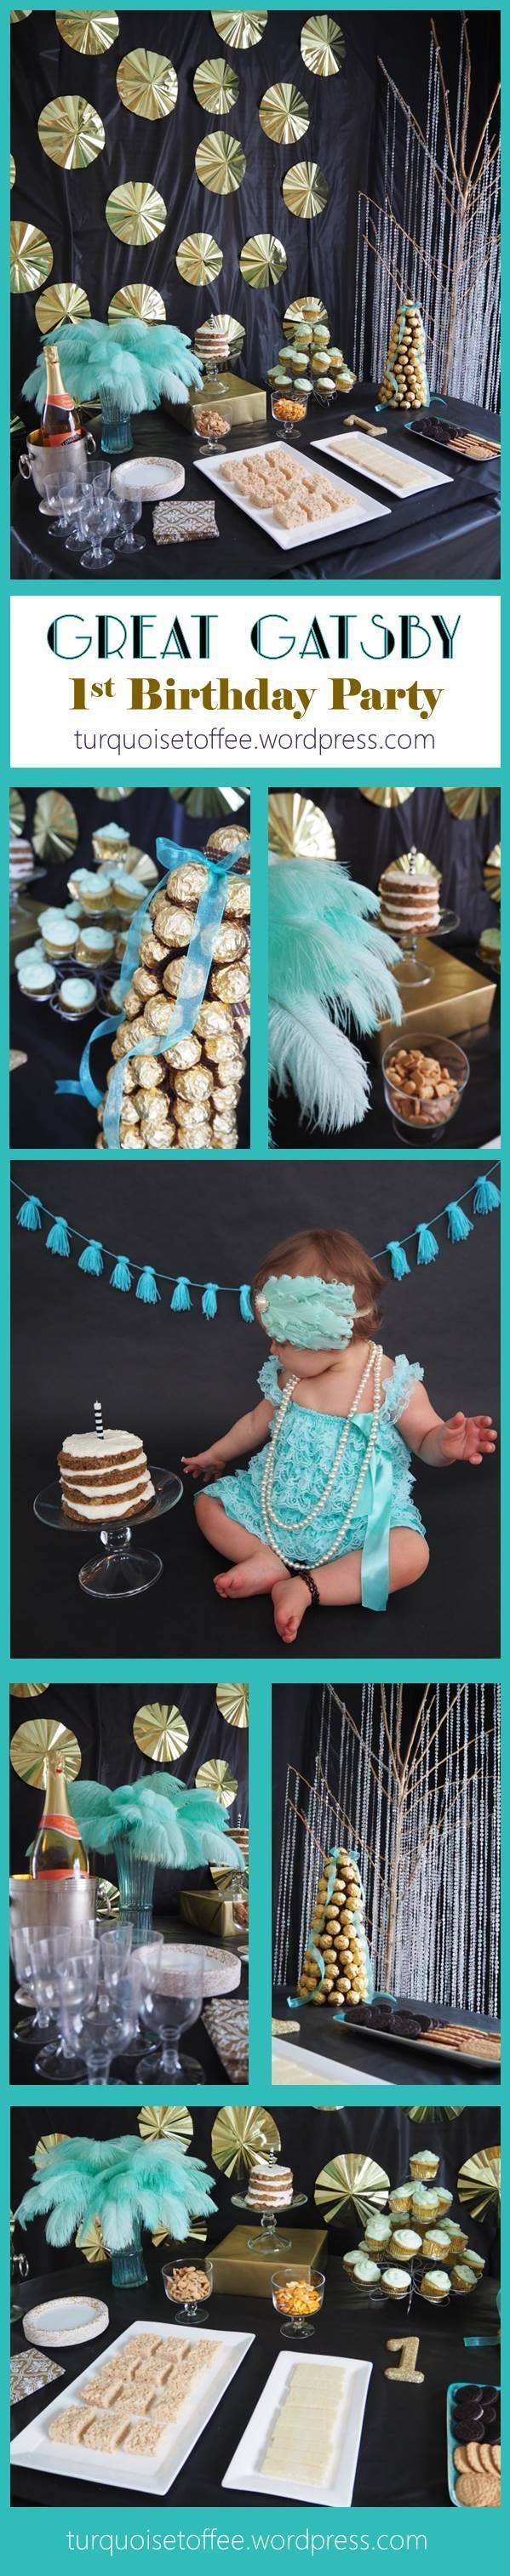 Great Gatsby First Birthday Party Turquoise 1920s cake smash